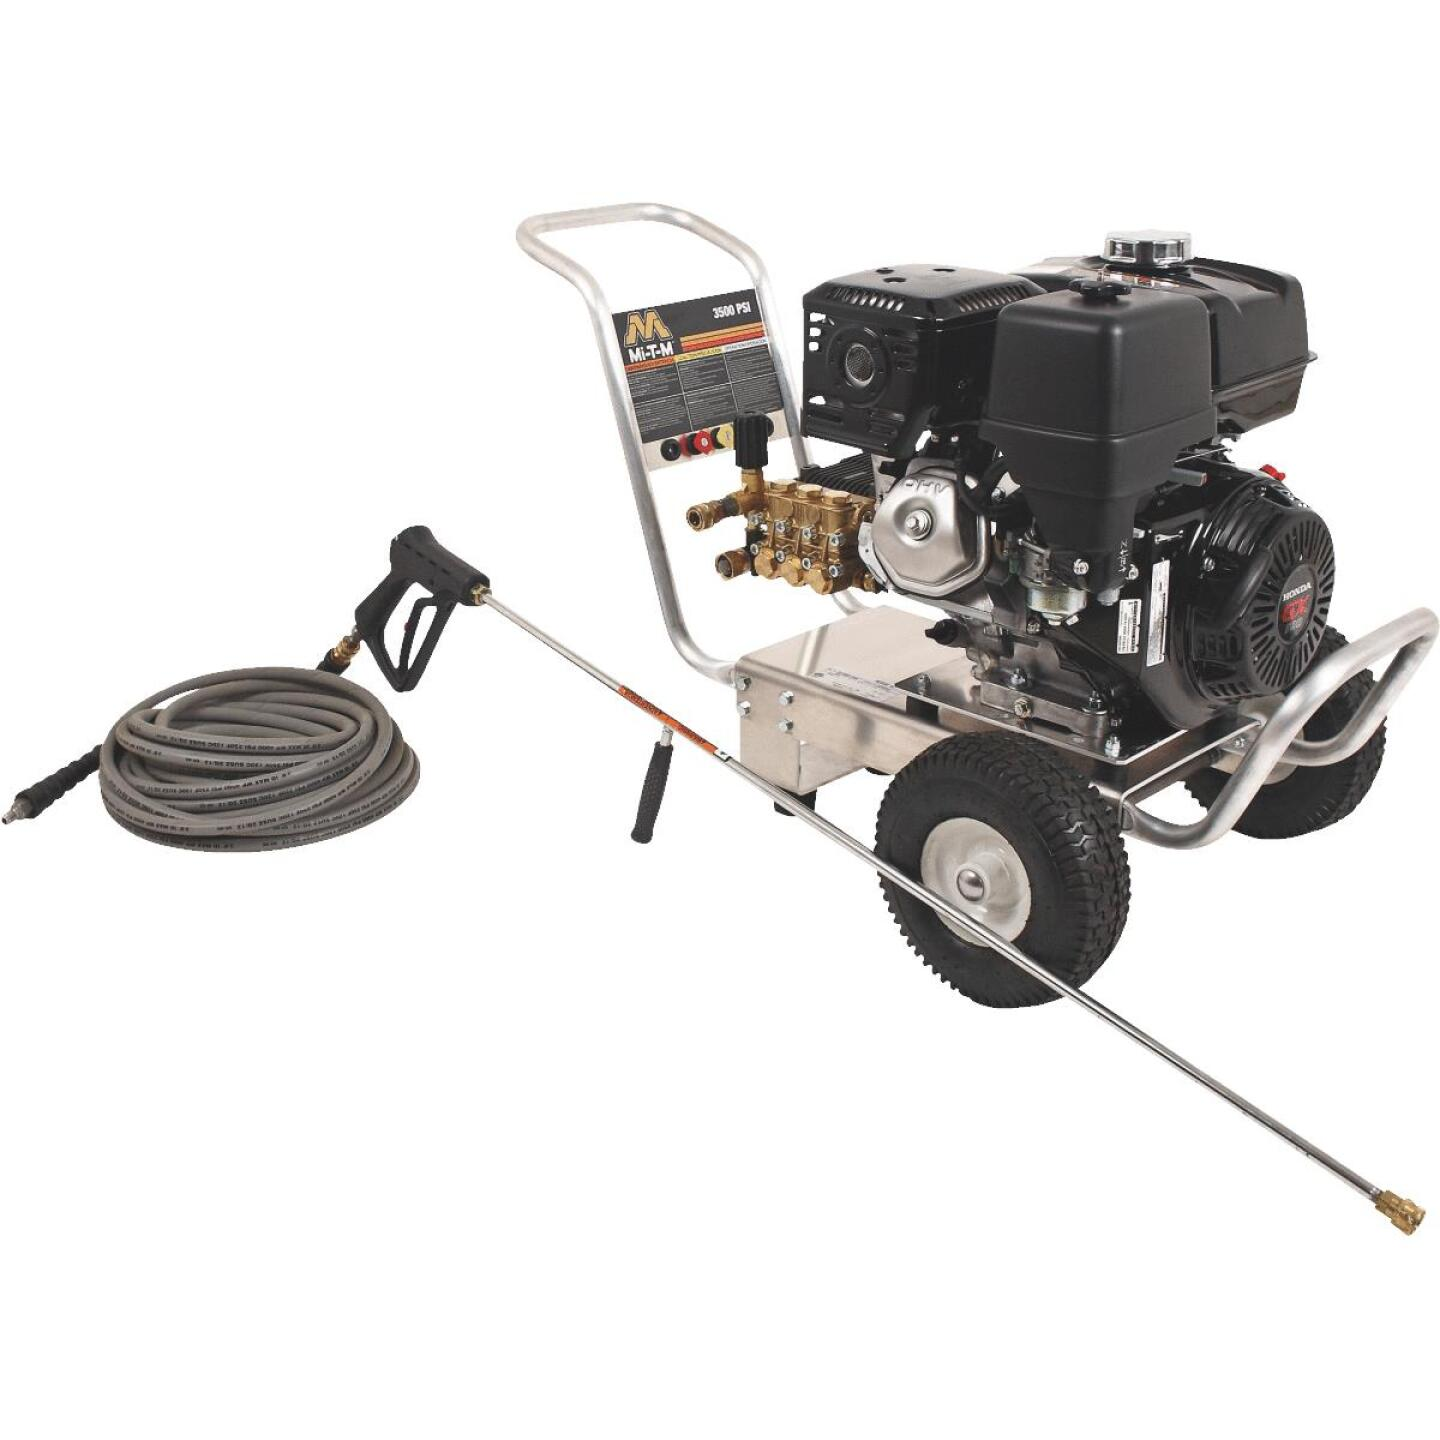 Mi-T-M 3500 psi 3.5 GPM Cold Water Gas Pressure Washer Image 1